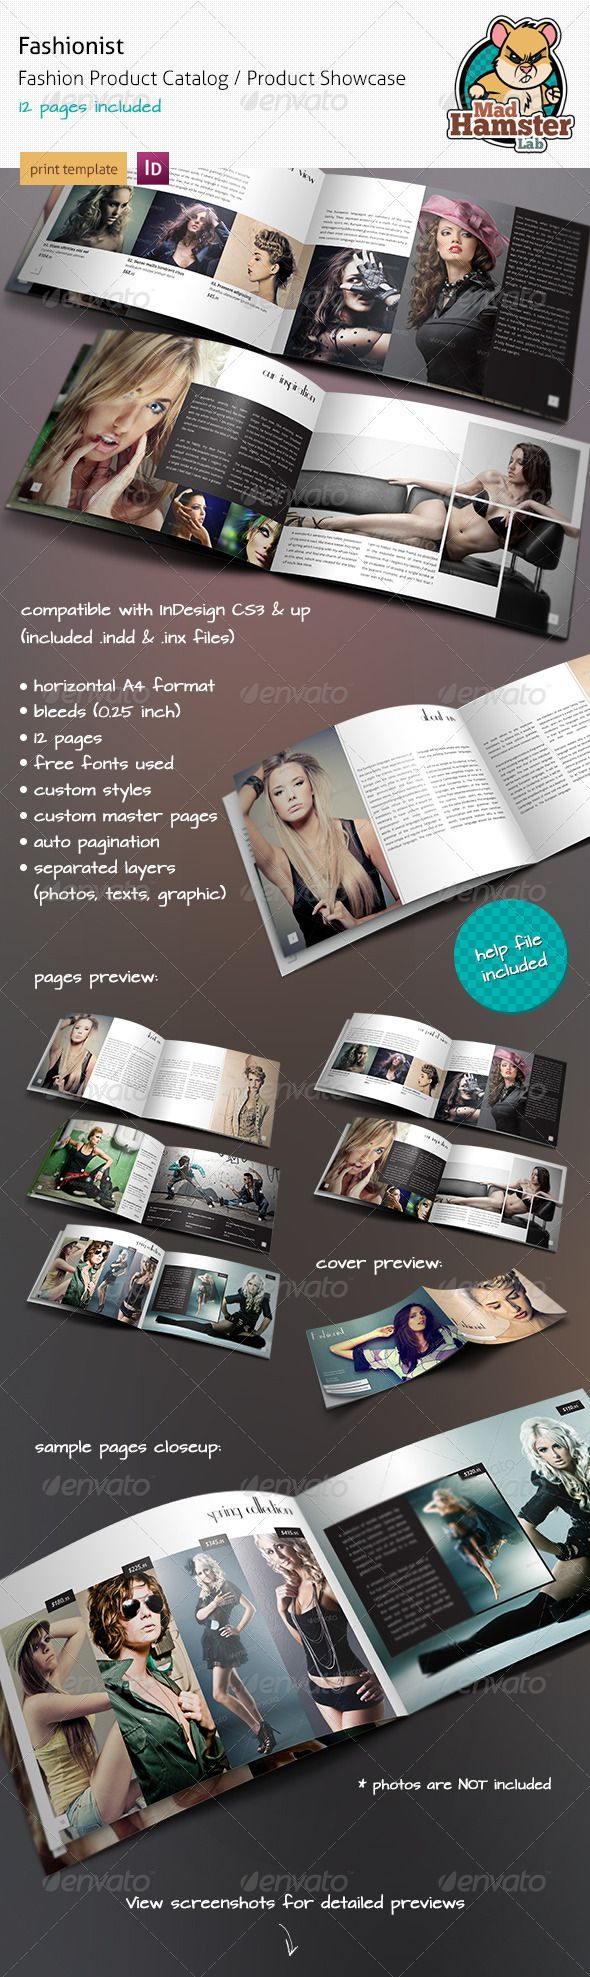 Fashionist - Fashion Product Catalog / Showcase. Fashionist is a A4 horizontal fashion product catalog / product showcase / photography portfolio A4 brochure. Minimal style of this print template makes a clean and elegant look. Highly organized elements (on differents layers). Ideal for fashion companies, clothes shops, shoe stores, photographers, web and graphic designers and other people where photography presentation or photo portfolio is required. Contains 12 pages.